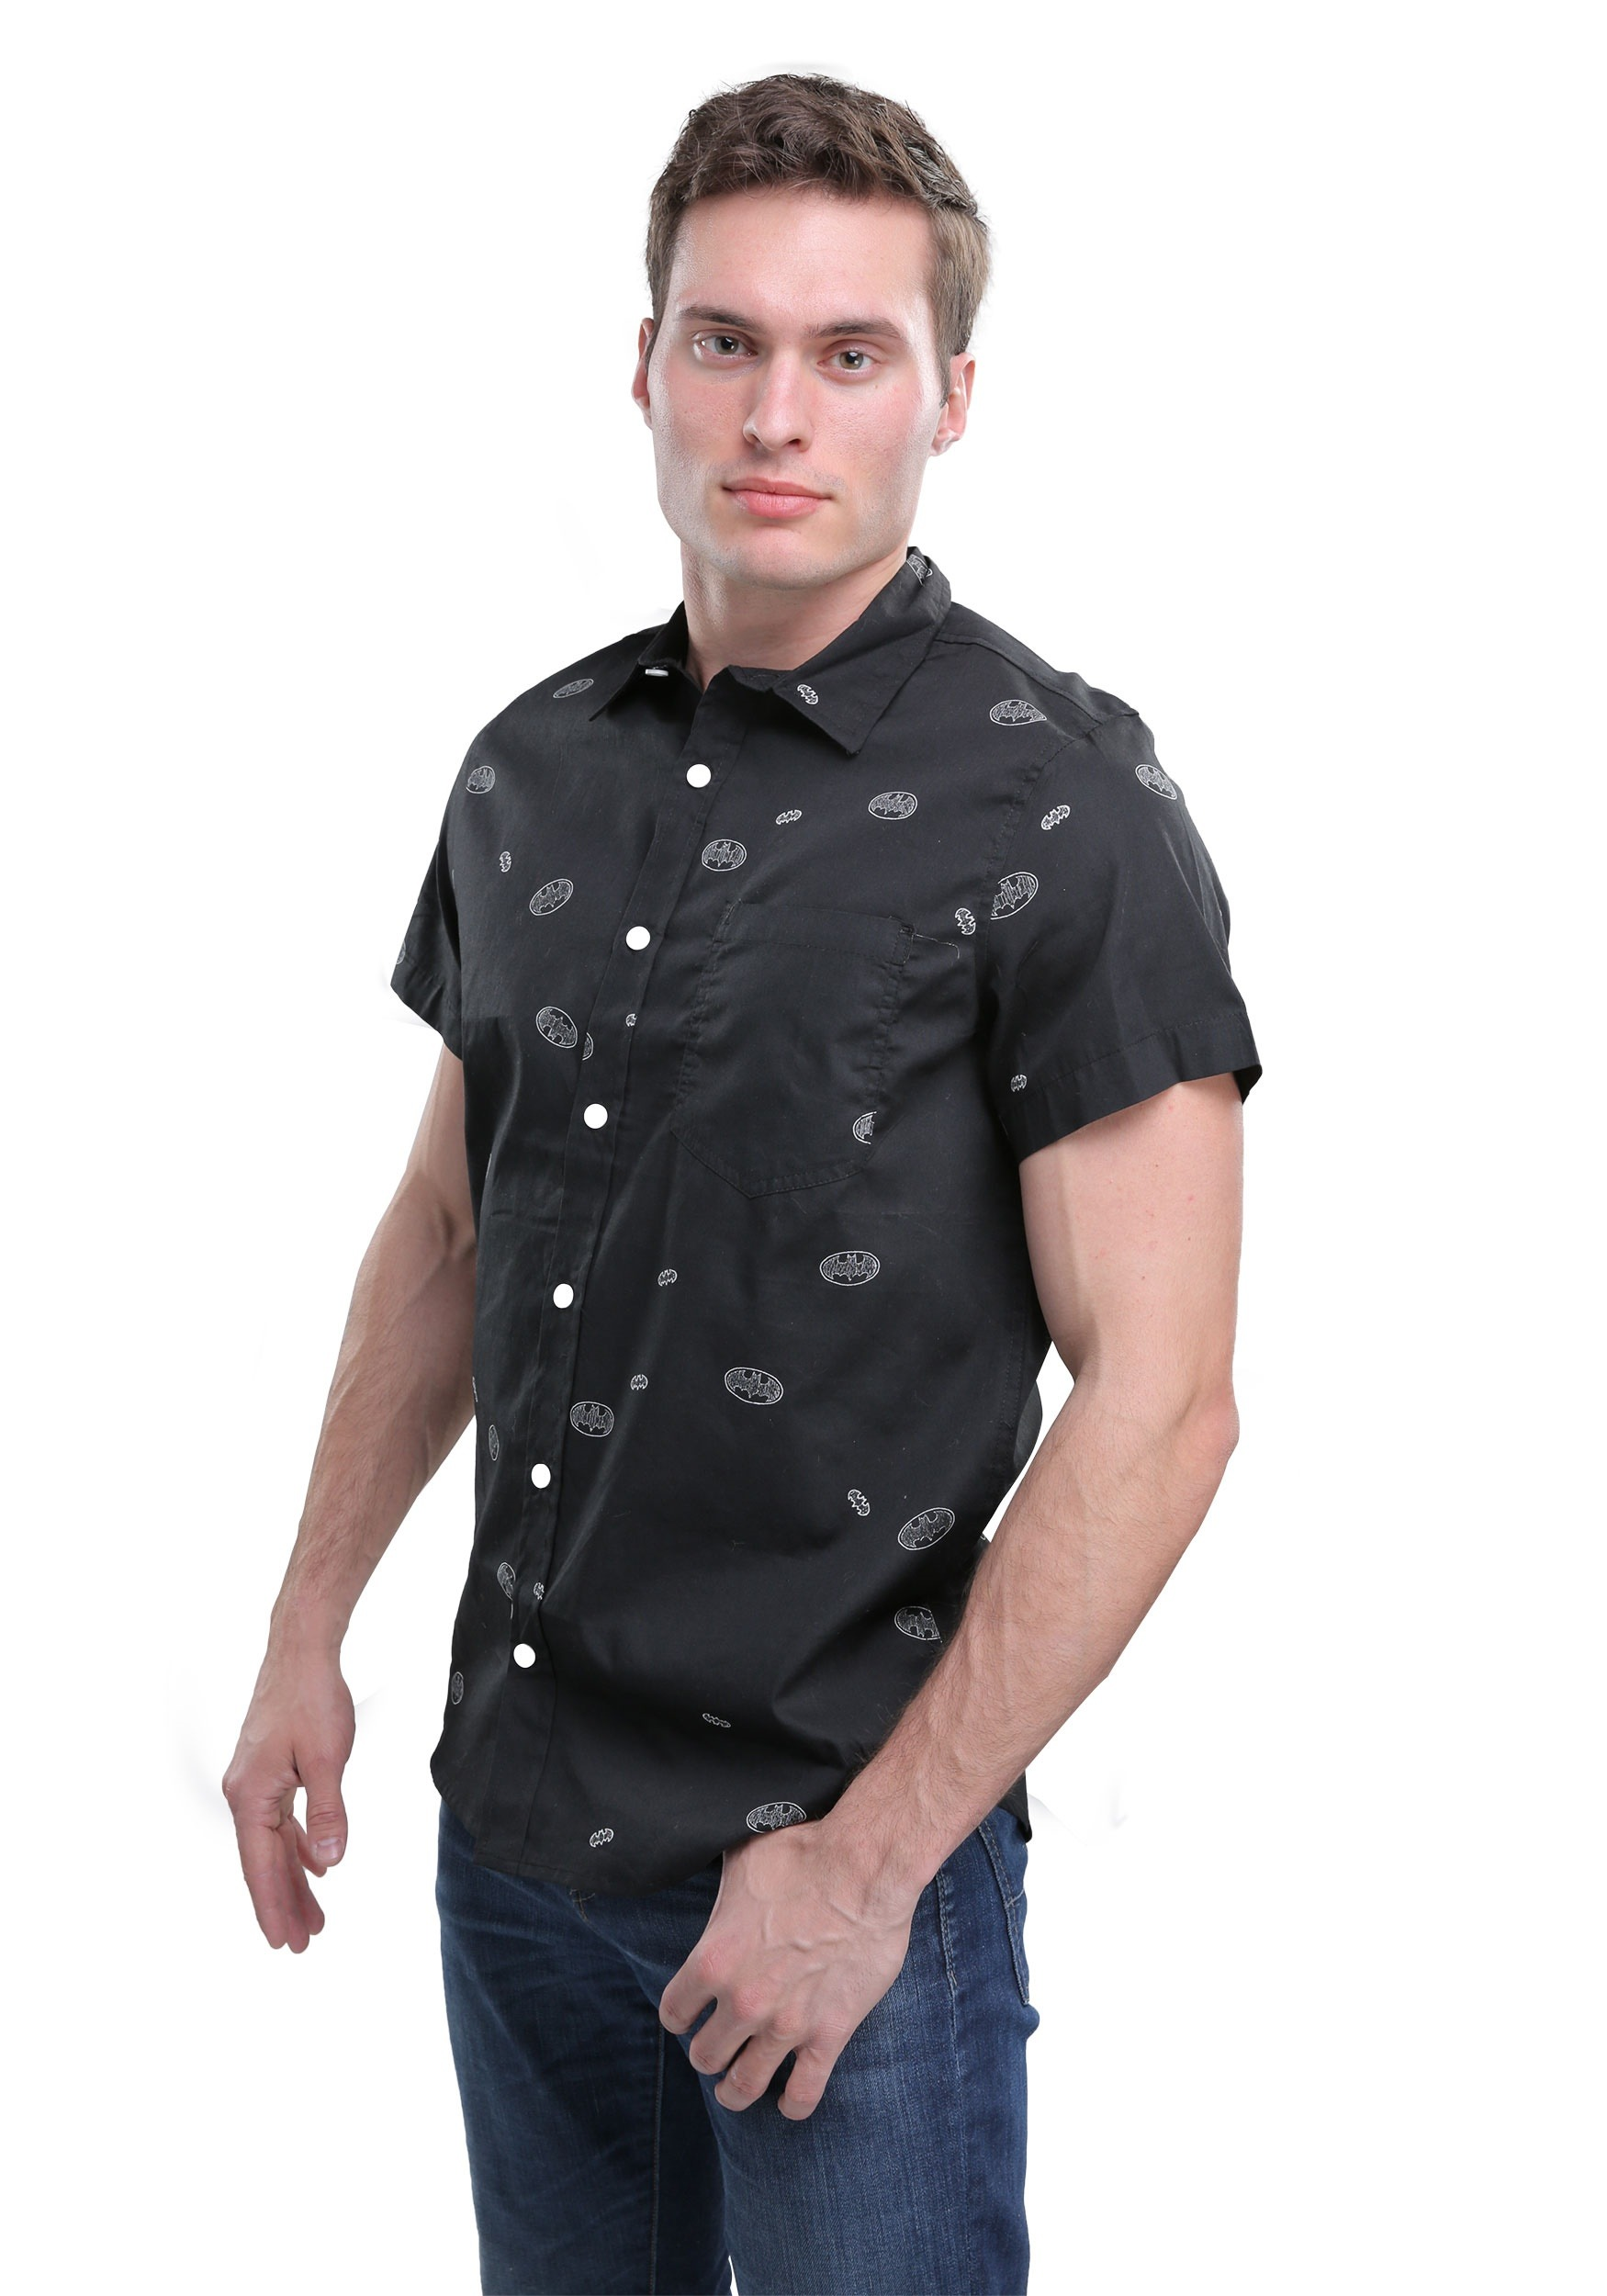 be0ba6e2df992 DC Comics Batman Woven Button Down Shirt for Men